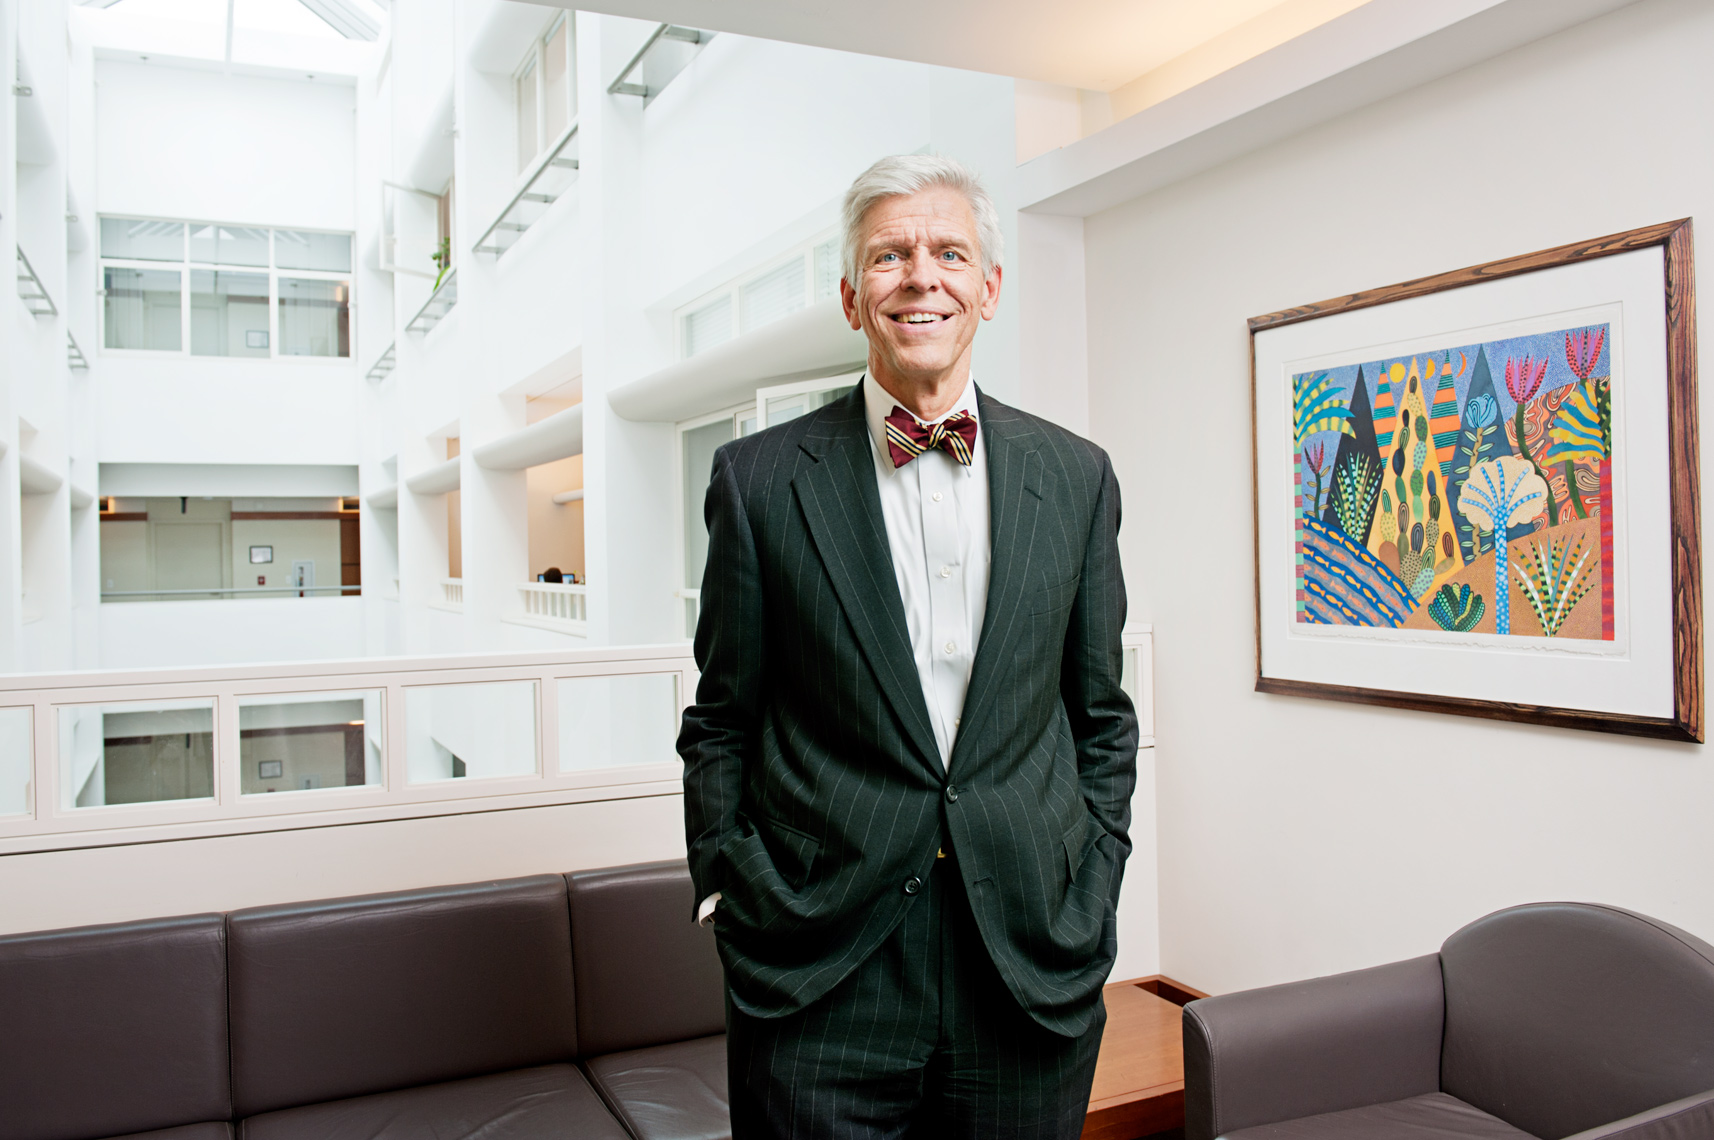 portrait of Harvard Business School Professor Thomas DeLong for the Harvard Business School Bulletin